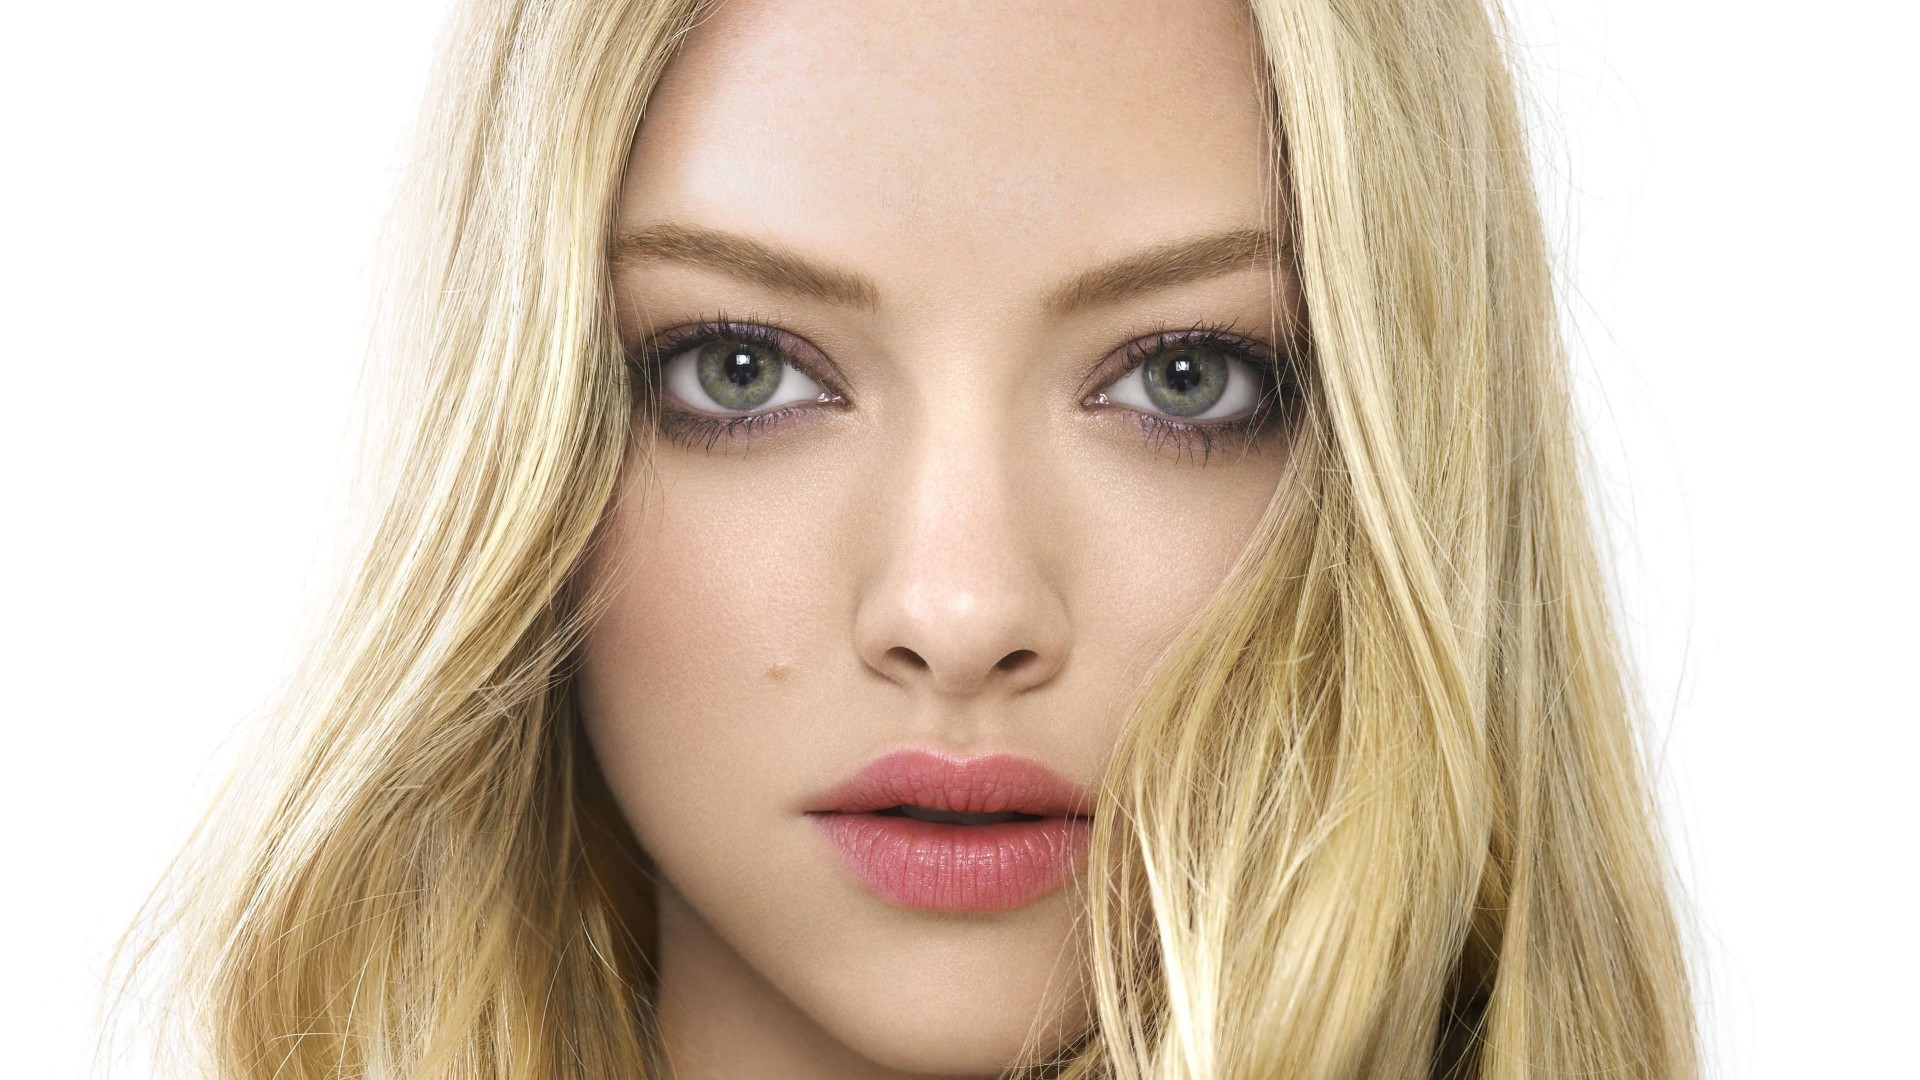 Amanda Seyfried Portrait Wallpaper for Desktop 1920x1080